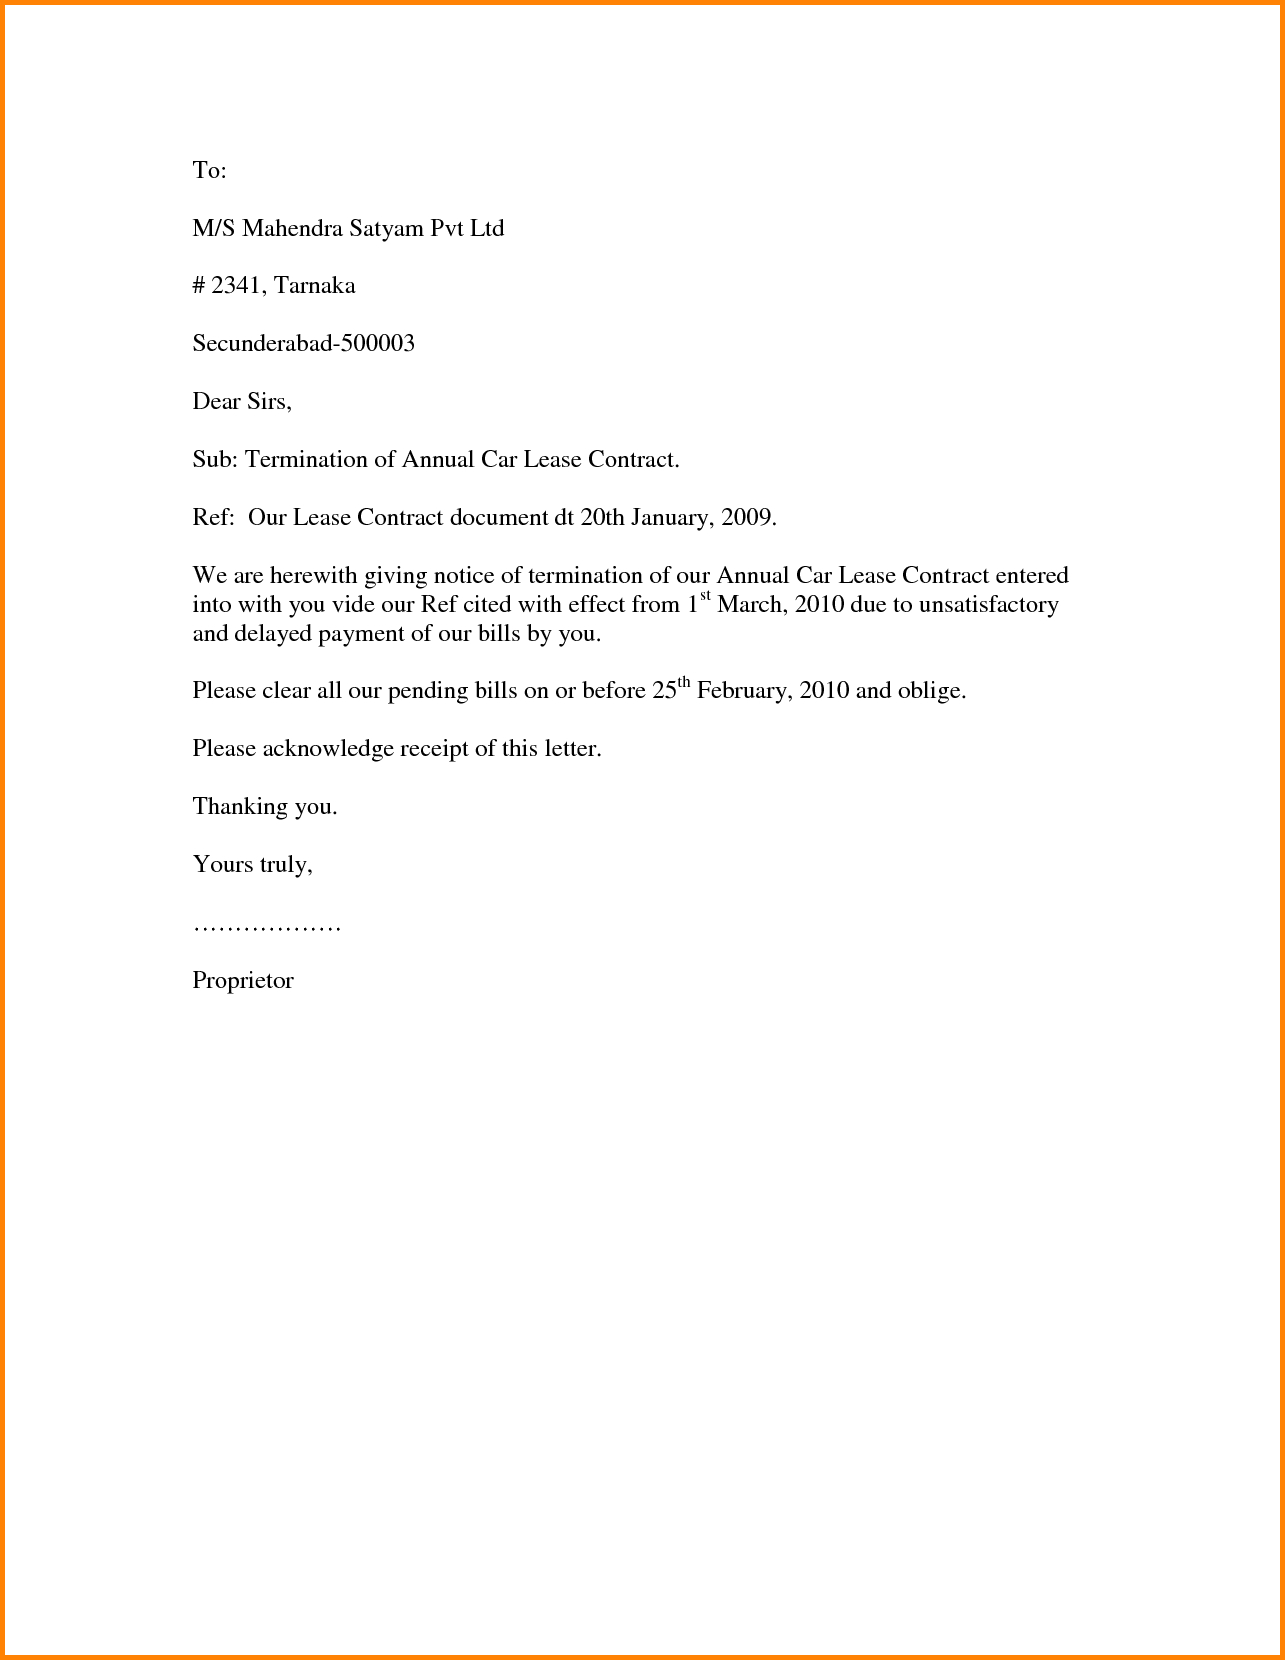 How to end letters how to end a resignation letter fancy resume how how to end letters how to end a resignation letter fancy resume how thecheapjerseys Images